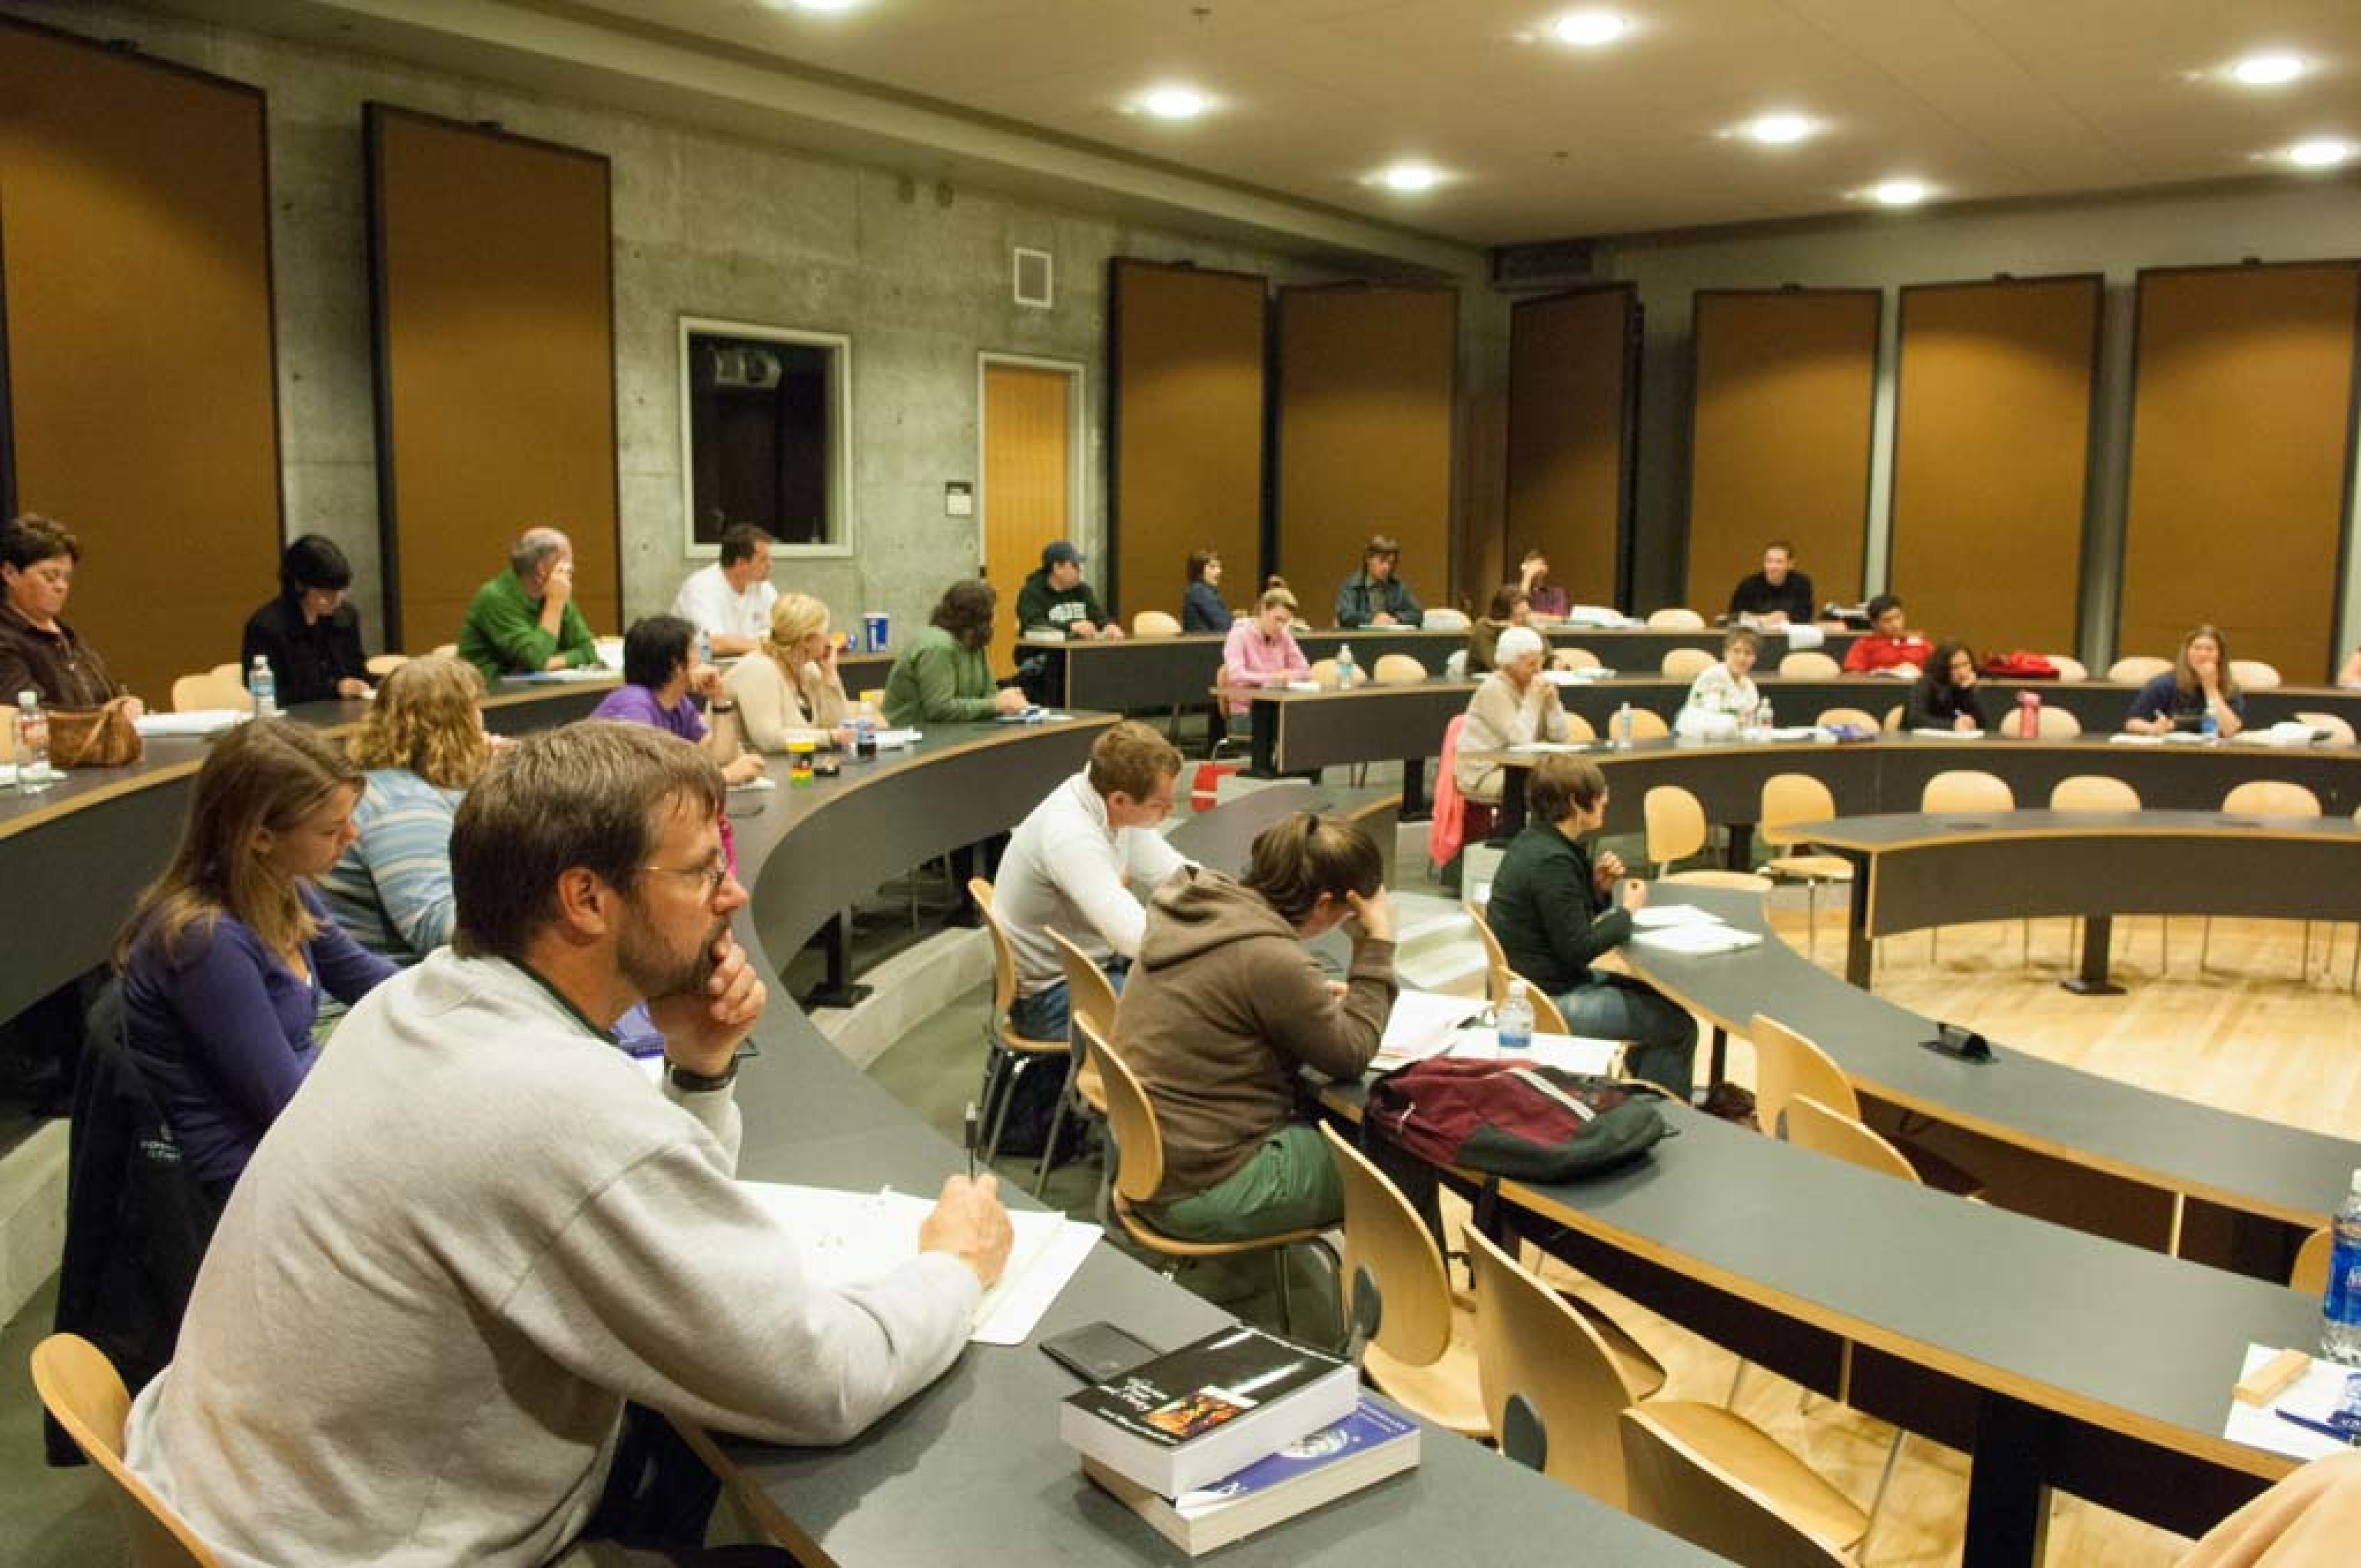 SEM2 Lecture Hall with Students